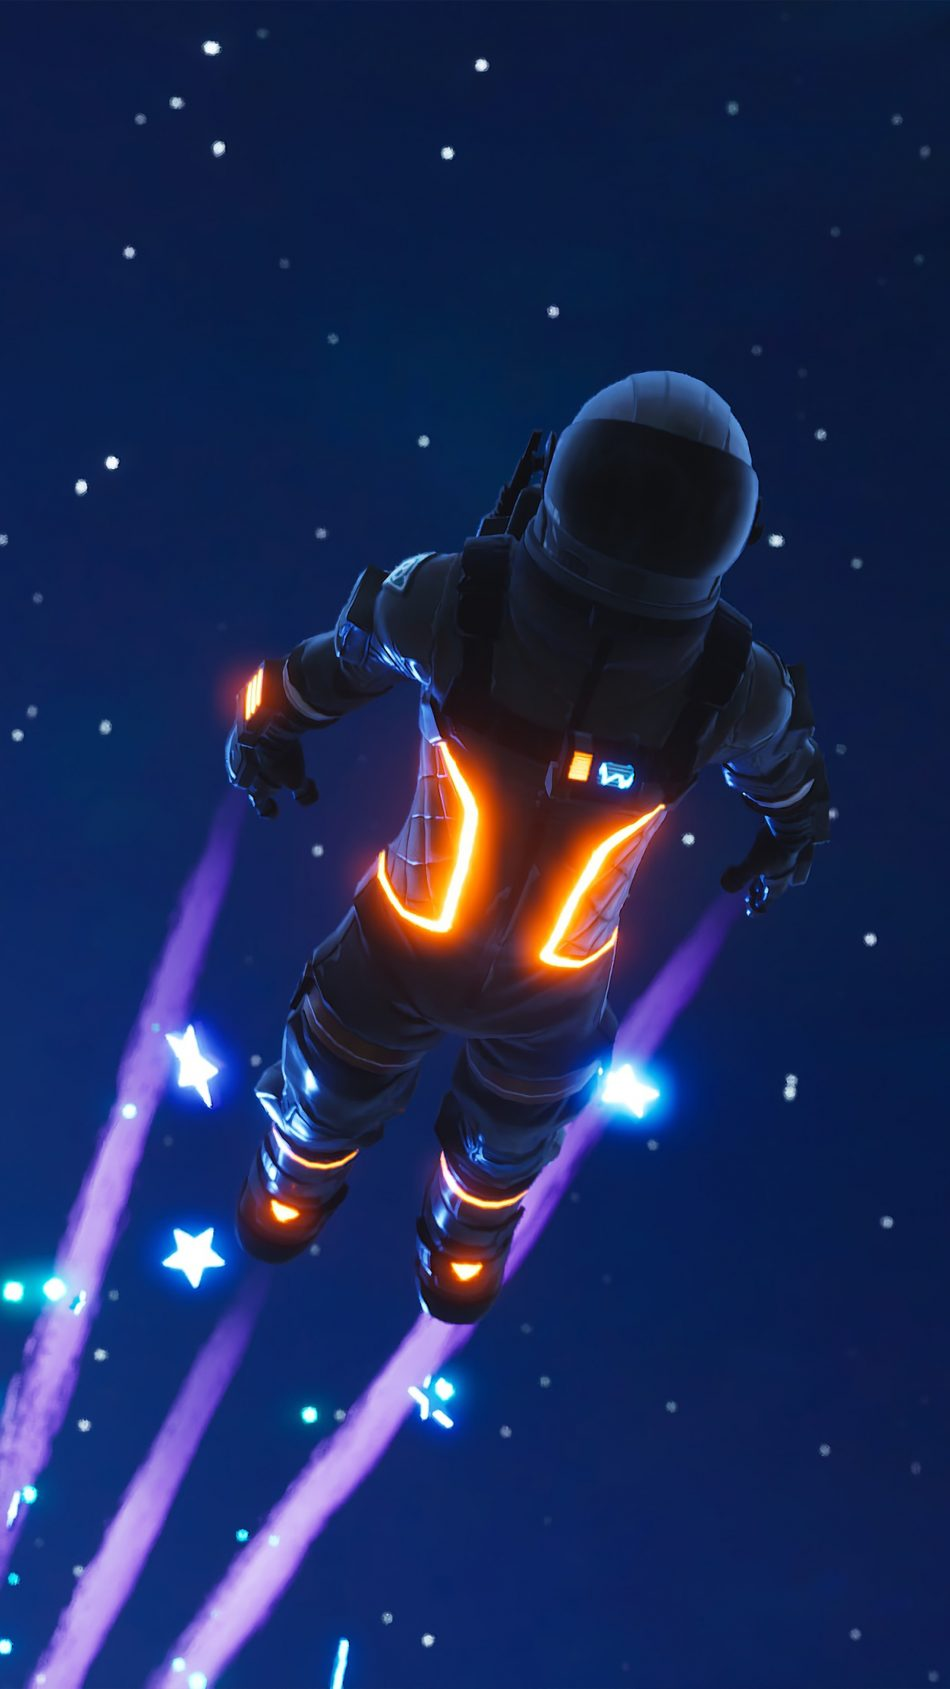 Dark Voyager Fortnite Battle Royale 4K Ultra HD Mobile Wallpaper